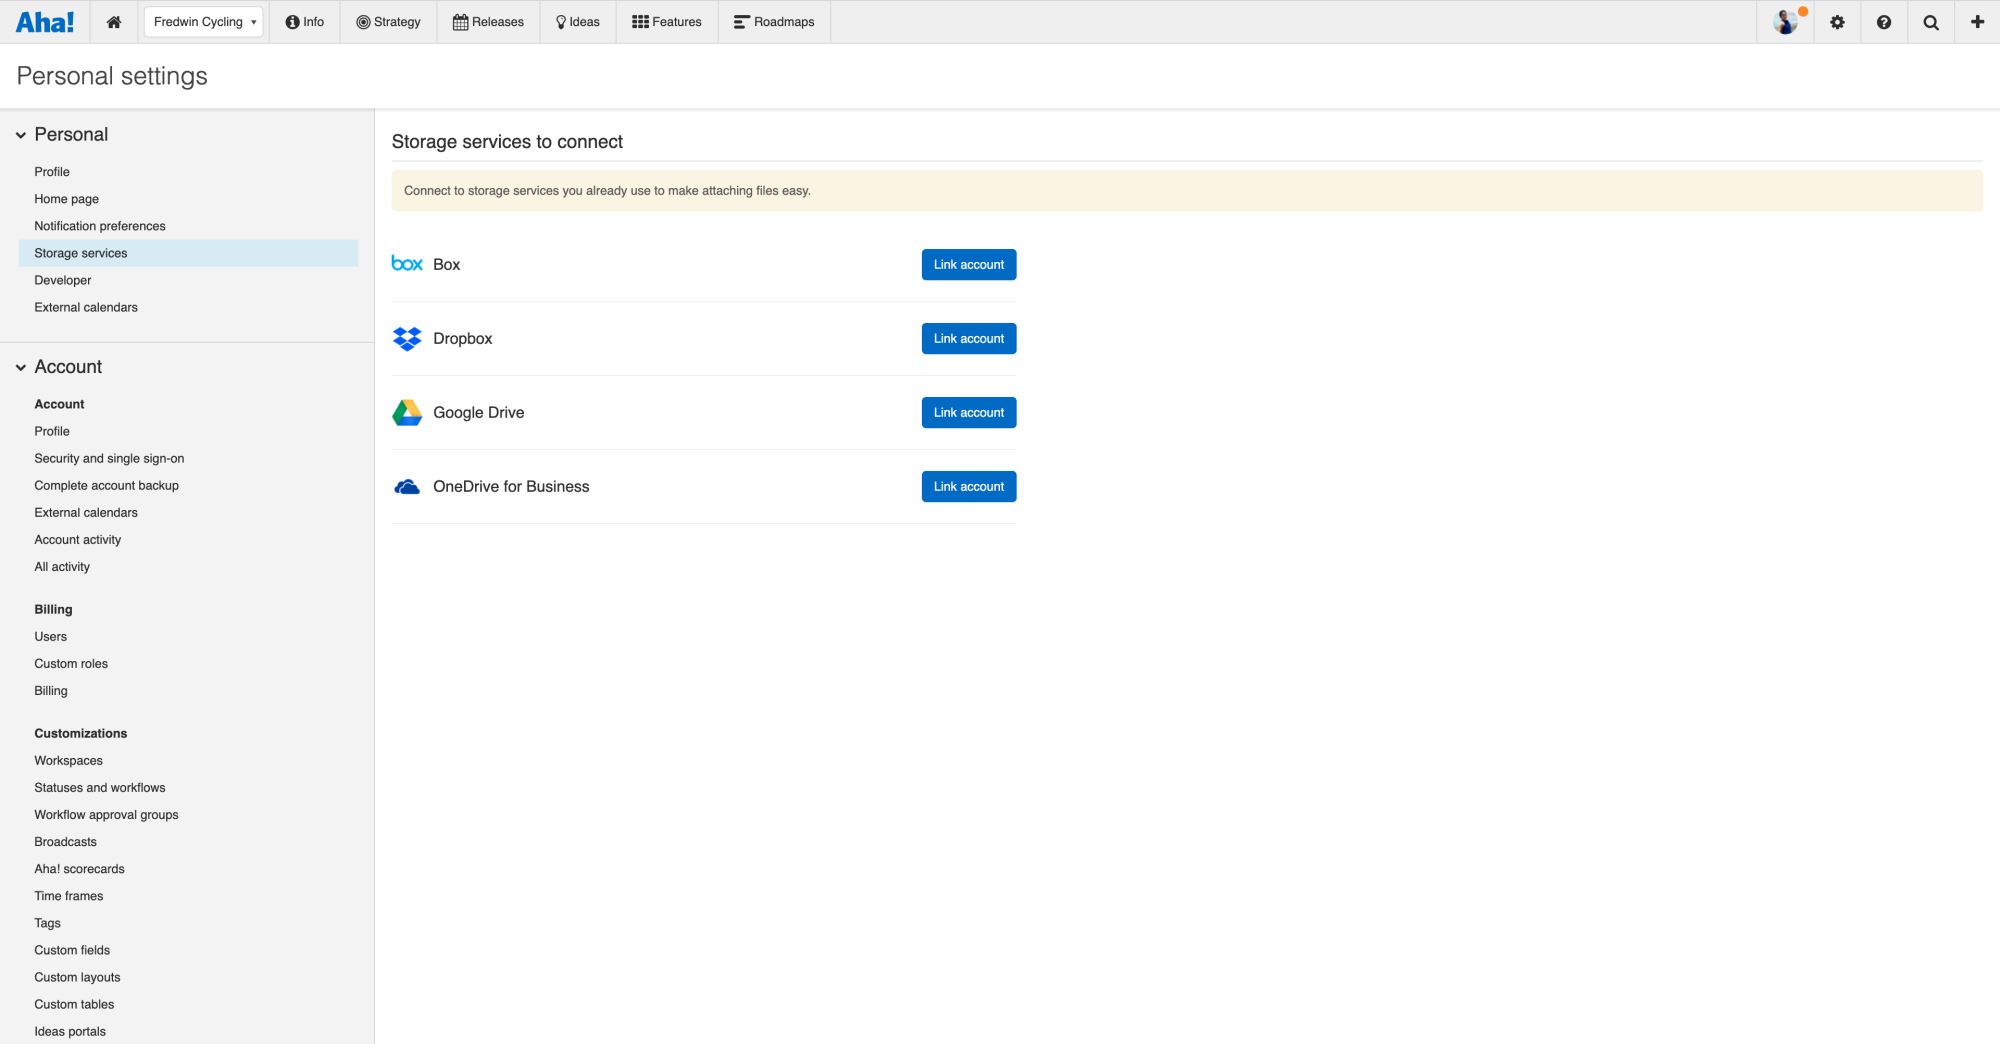 Each Aha! user will need to set up an integration with Dropbox in their personal settings.